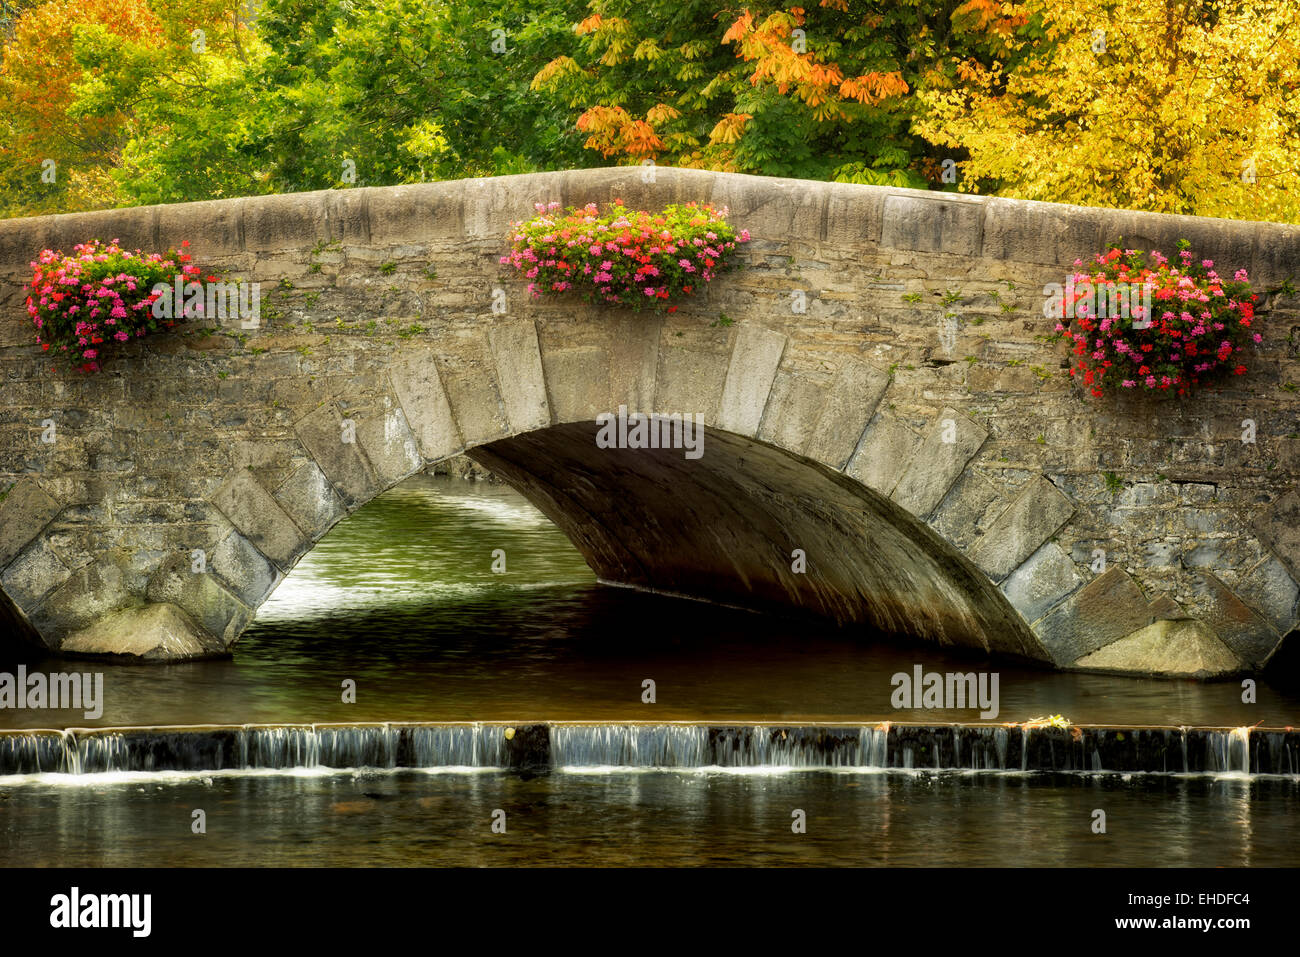 Hanging flower baskets on bridge with fall colored trees in Westport, Ireland - Stock Image